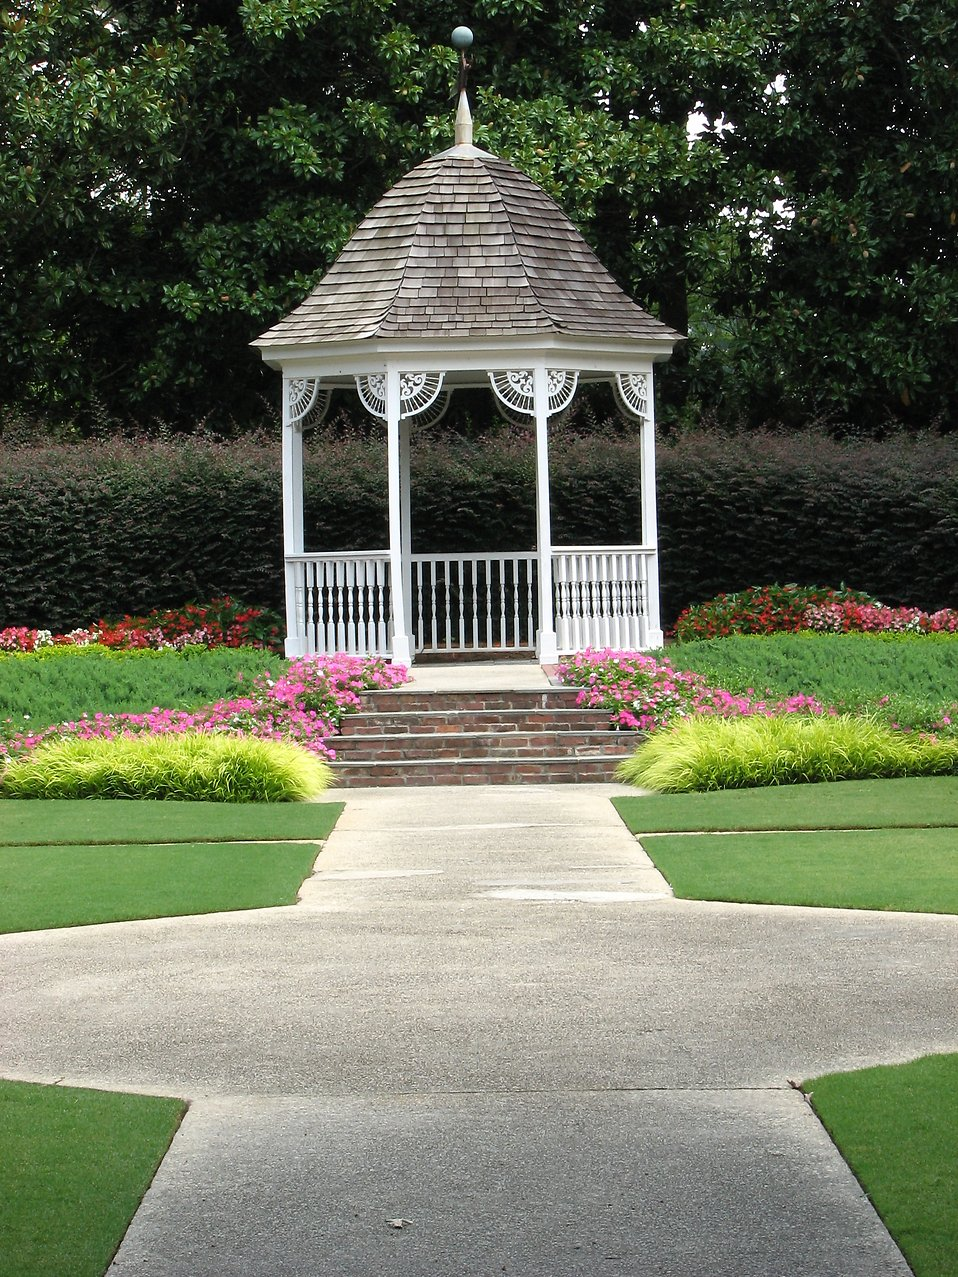 Garden gazebo at Stone Mountain Park : Free Stock Photo